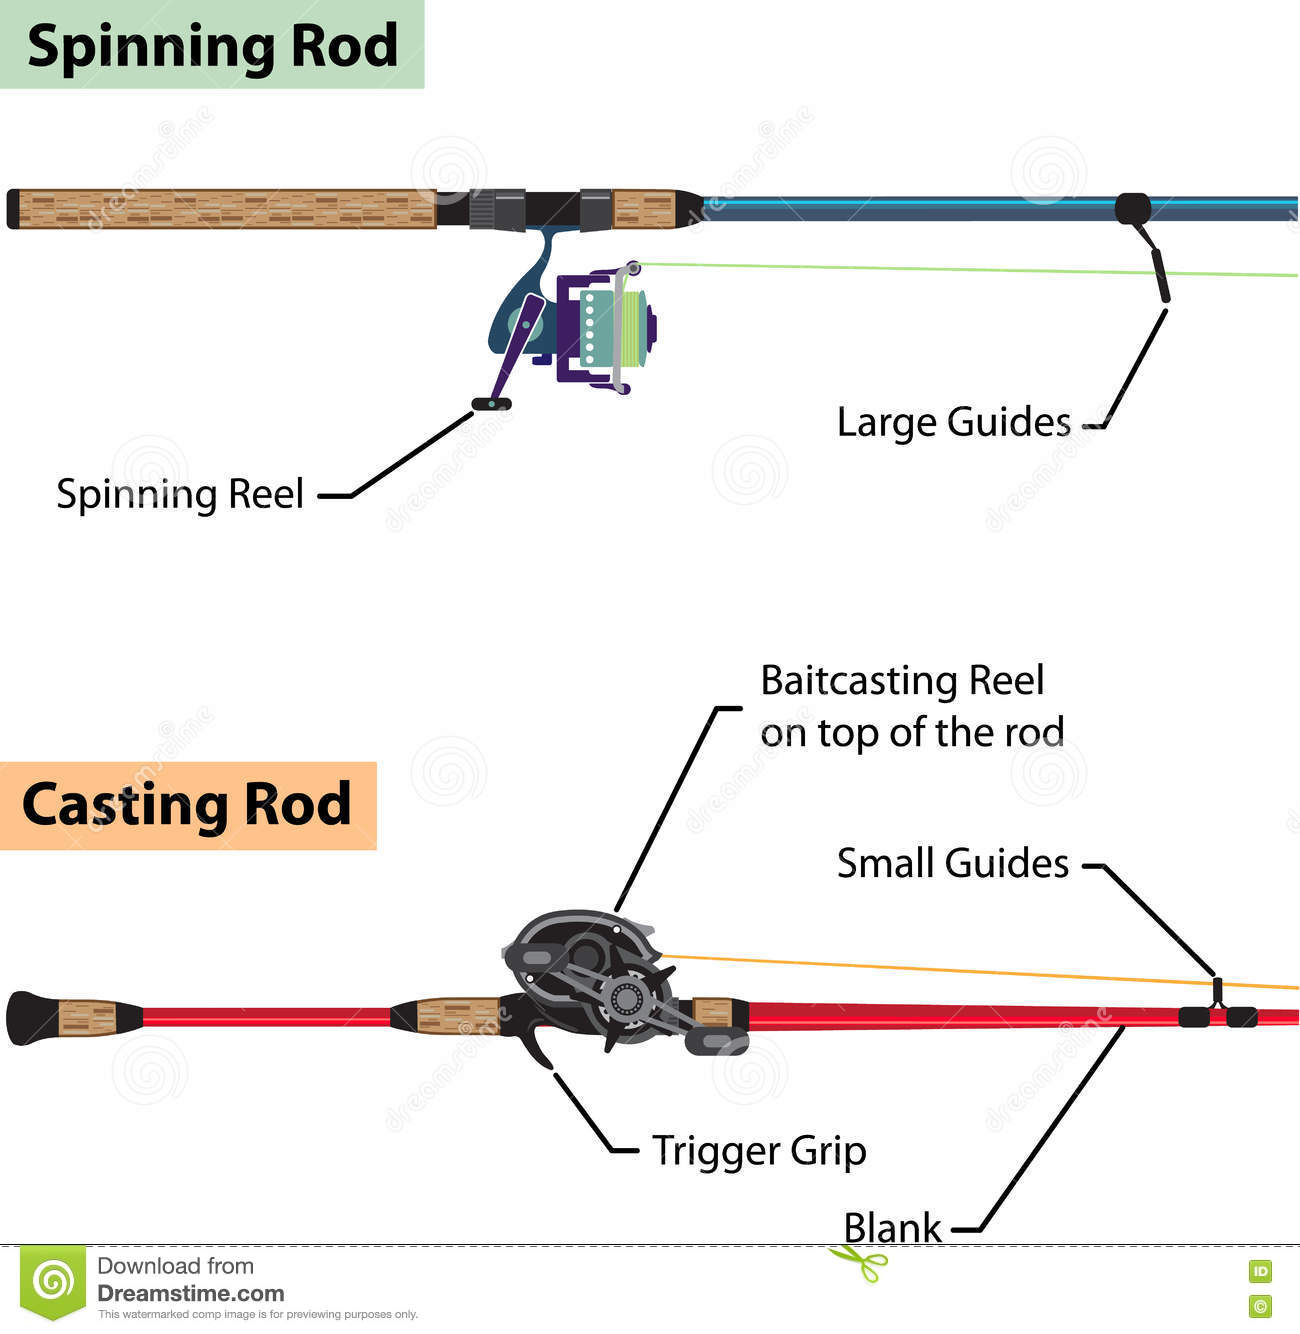 fishing pole and reel diagram    diagram    of spinning rod and baitcasting rod vector     diagram    of spinning rod and baitcasting rod vector